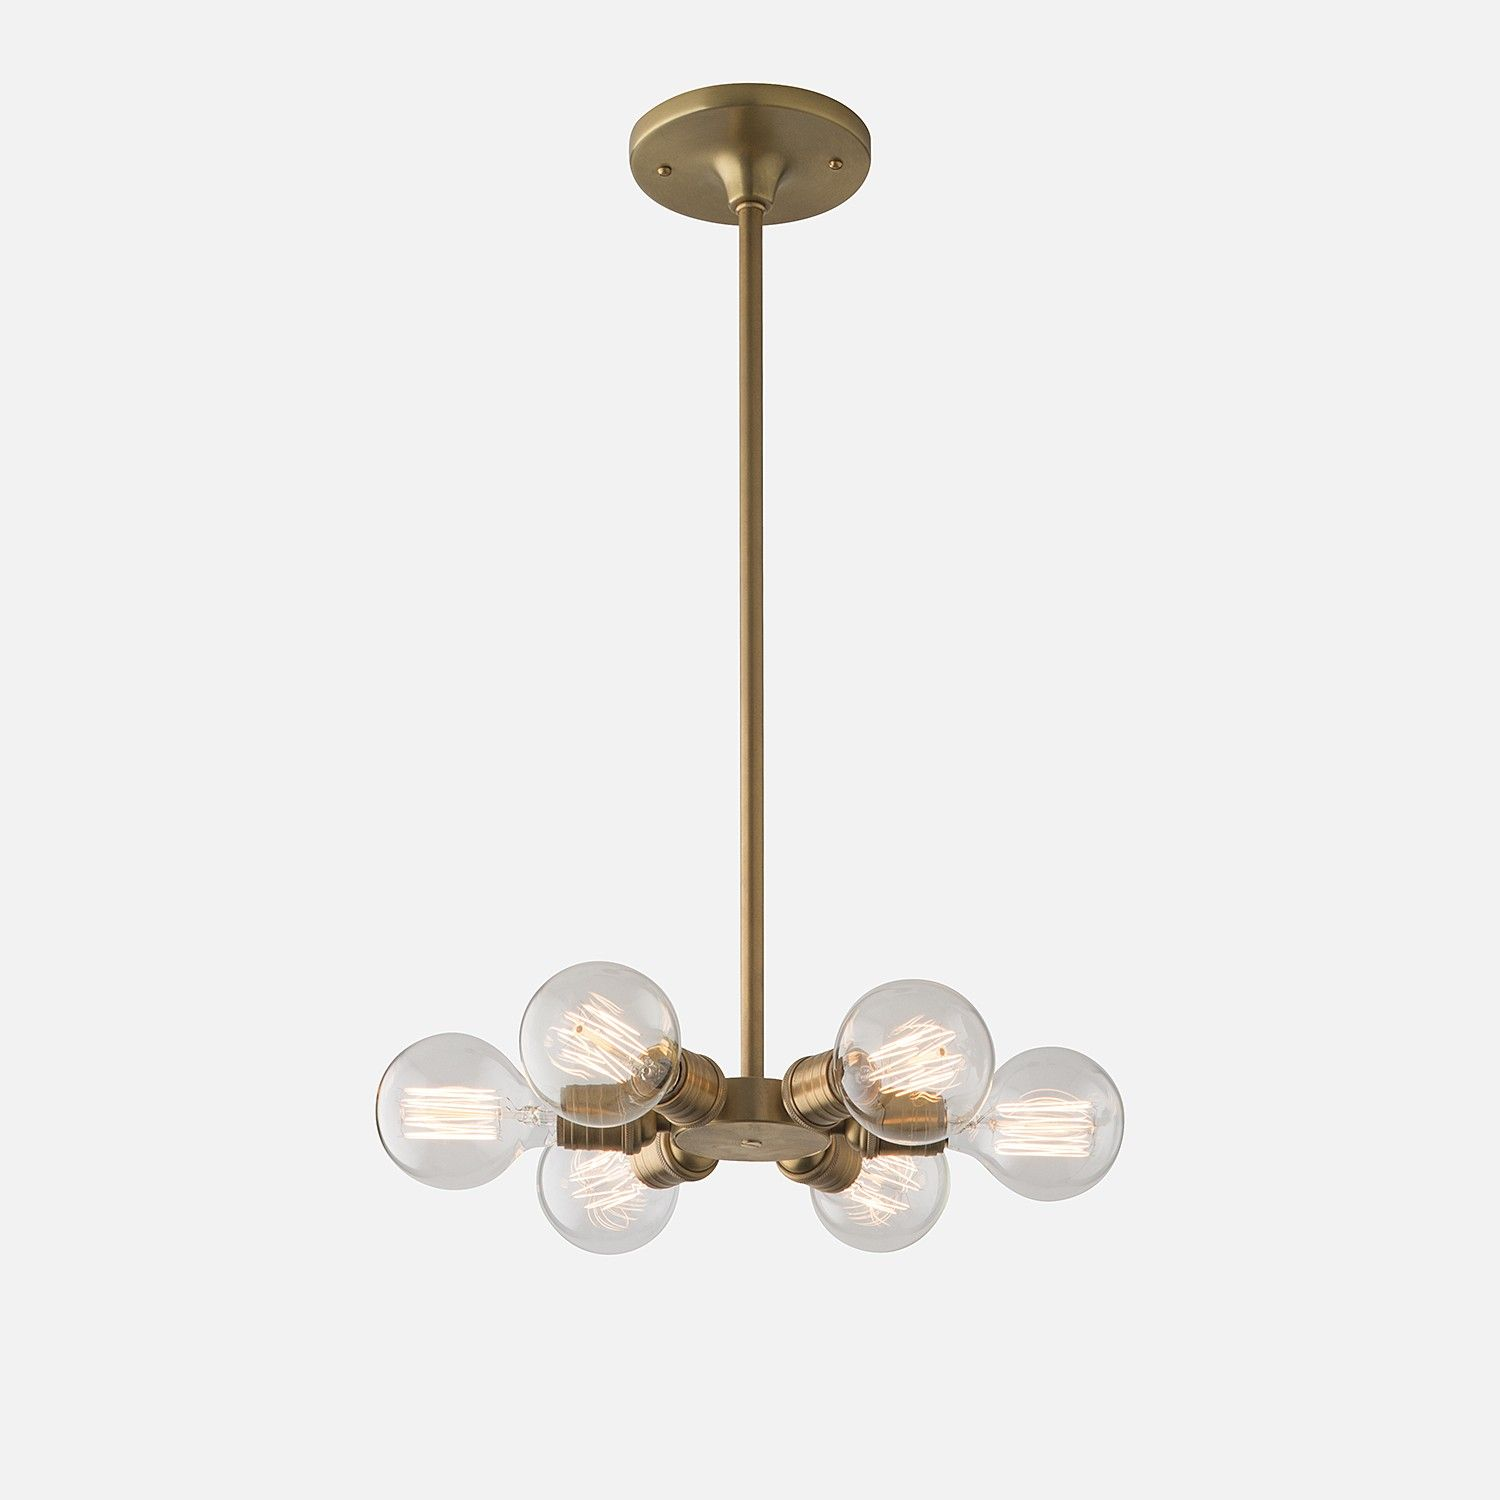 Satellite 6 Chandelier